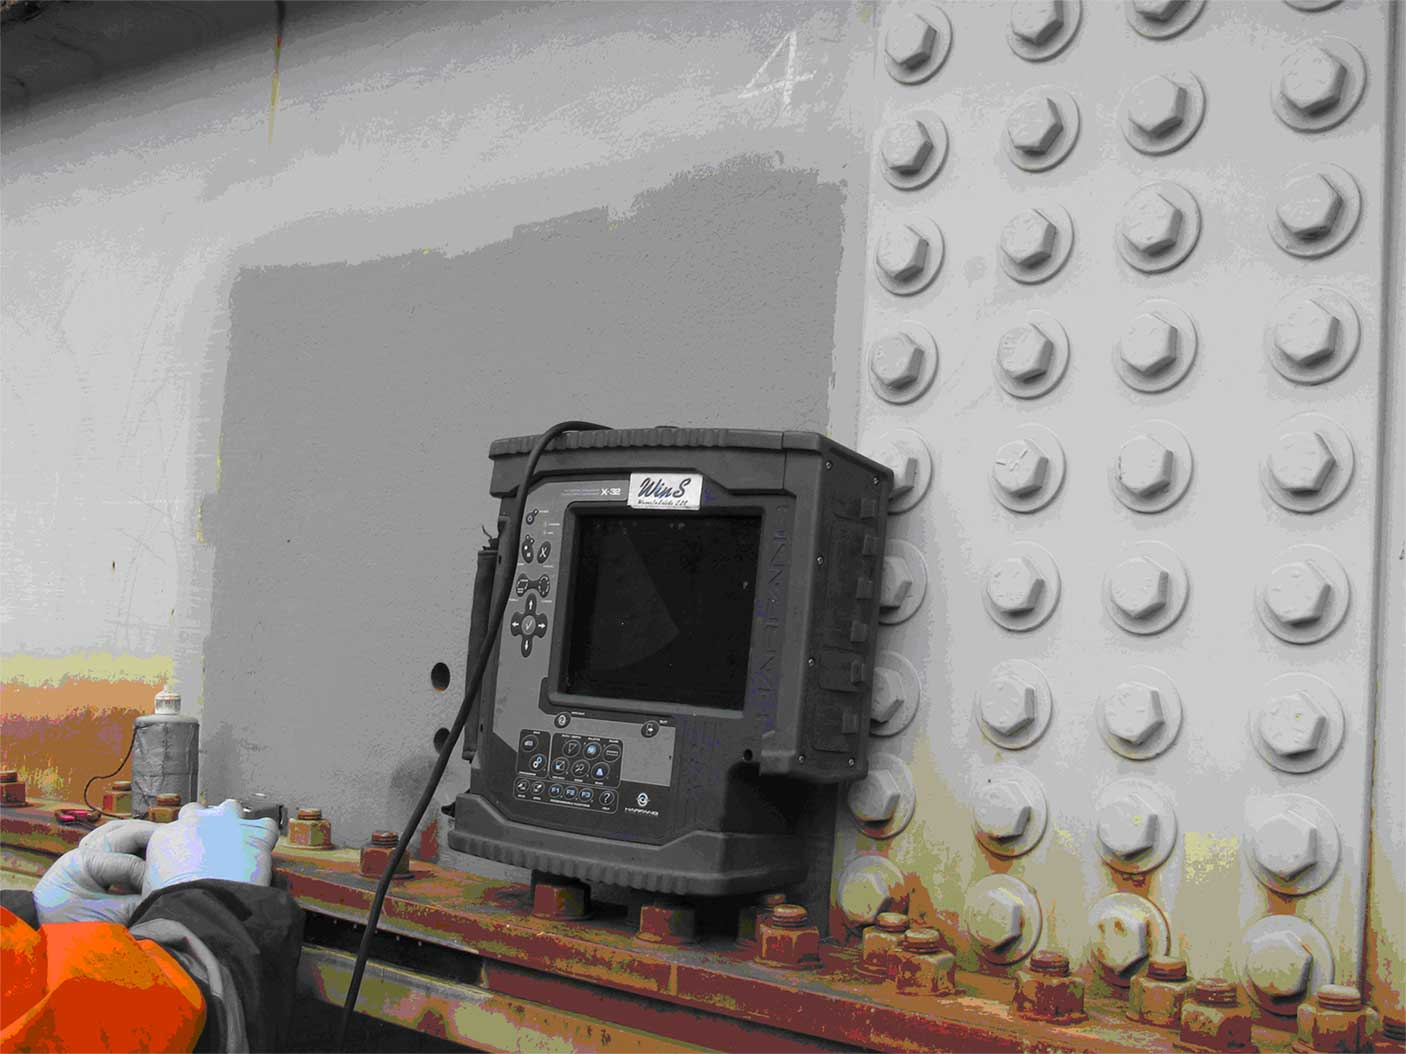 Inspector using Ultrasonic testing during a bridge inspection.